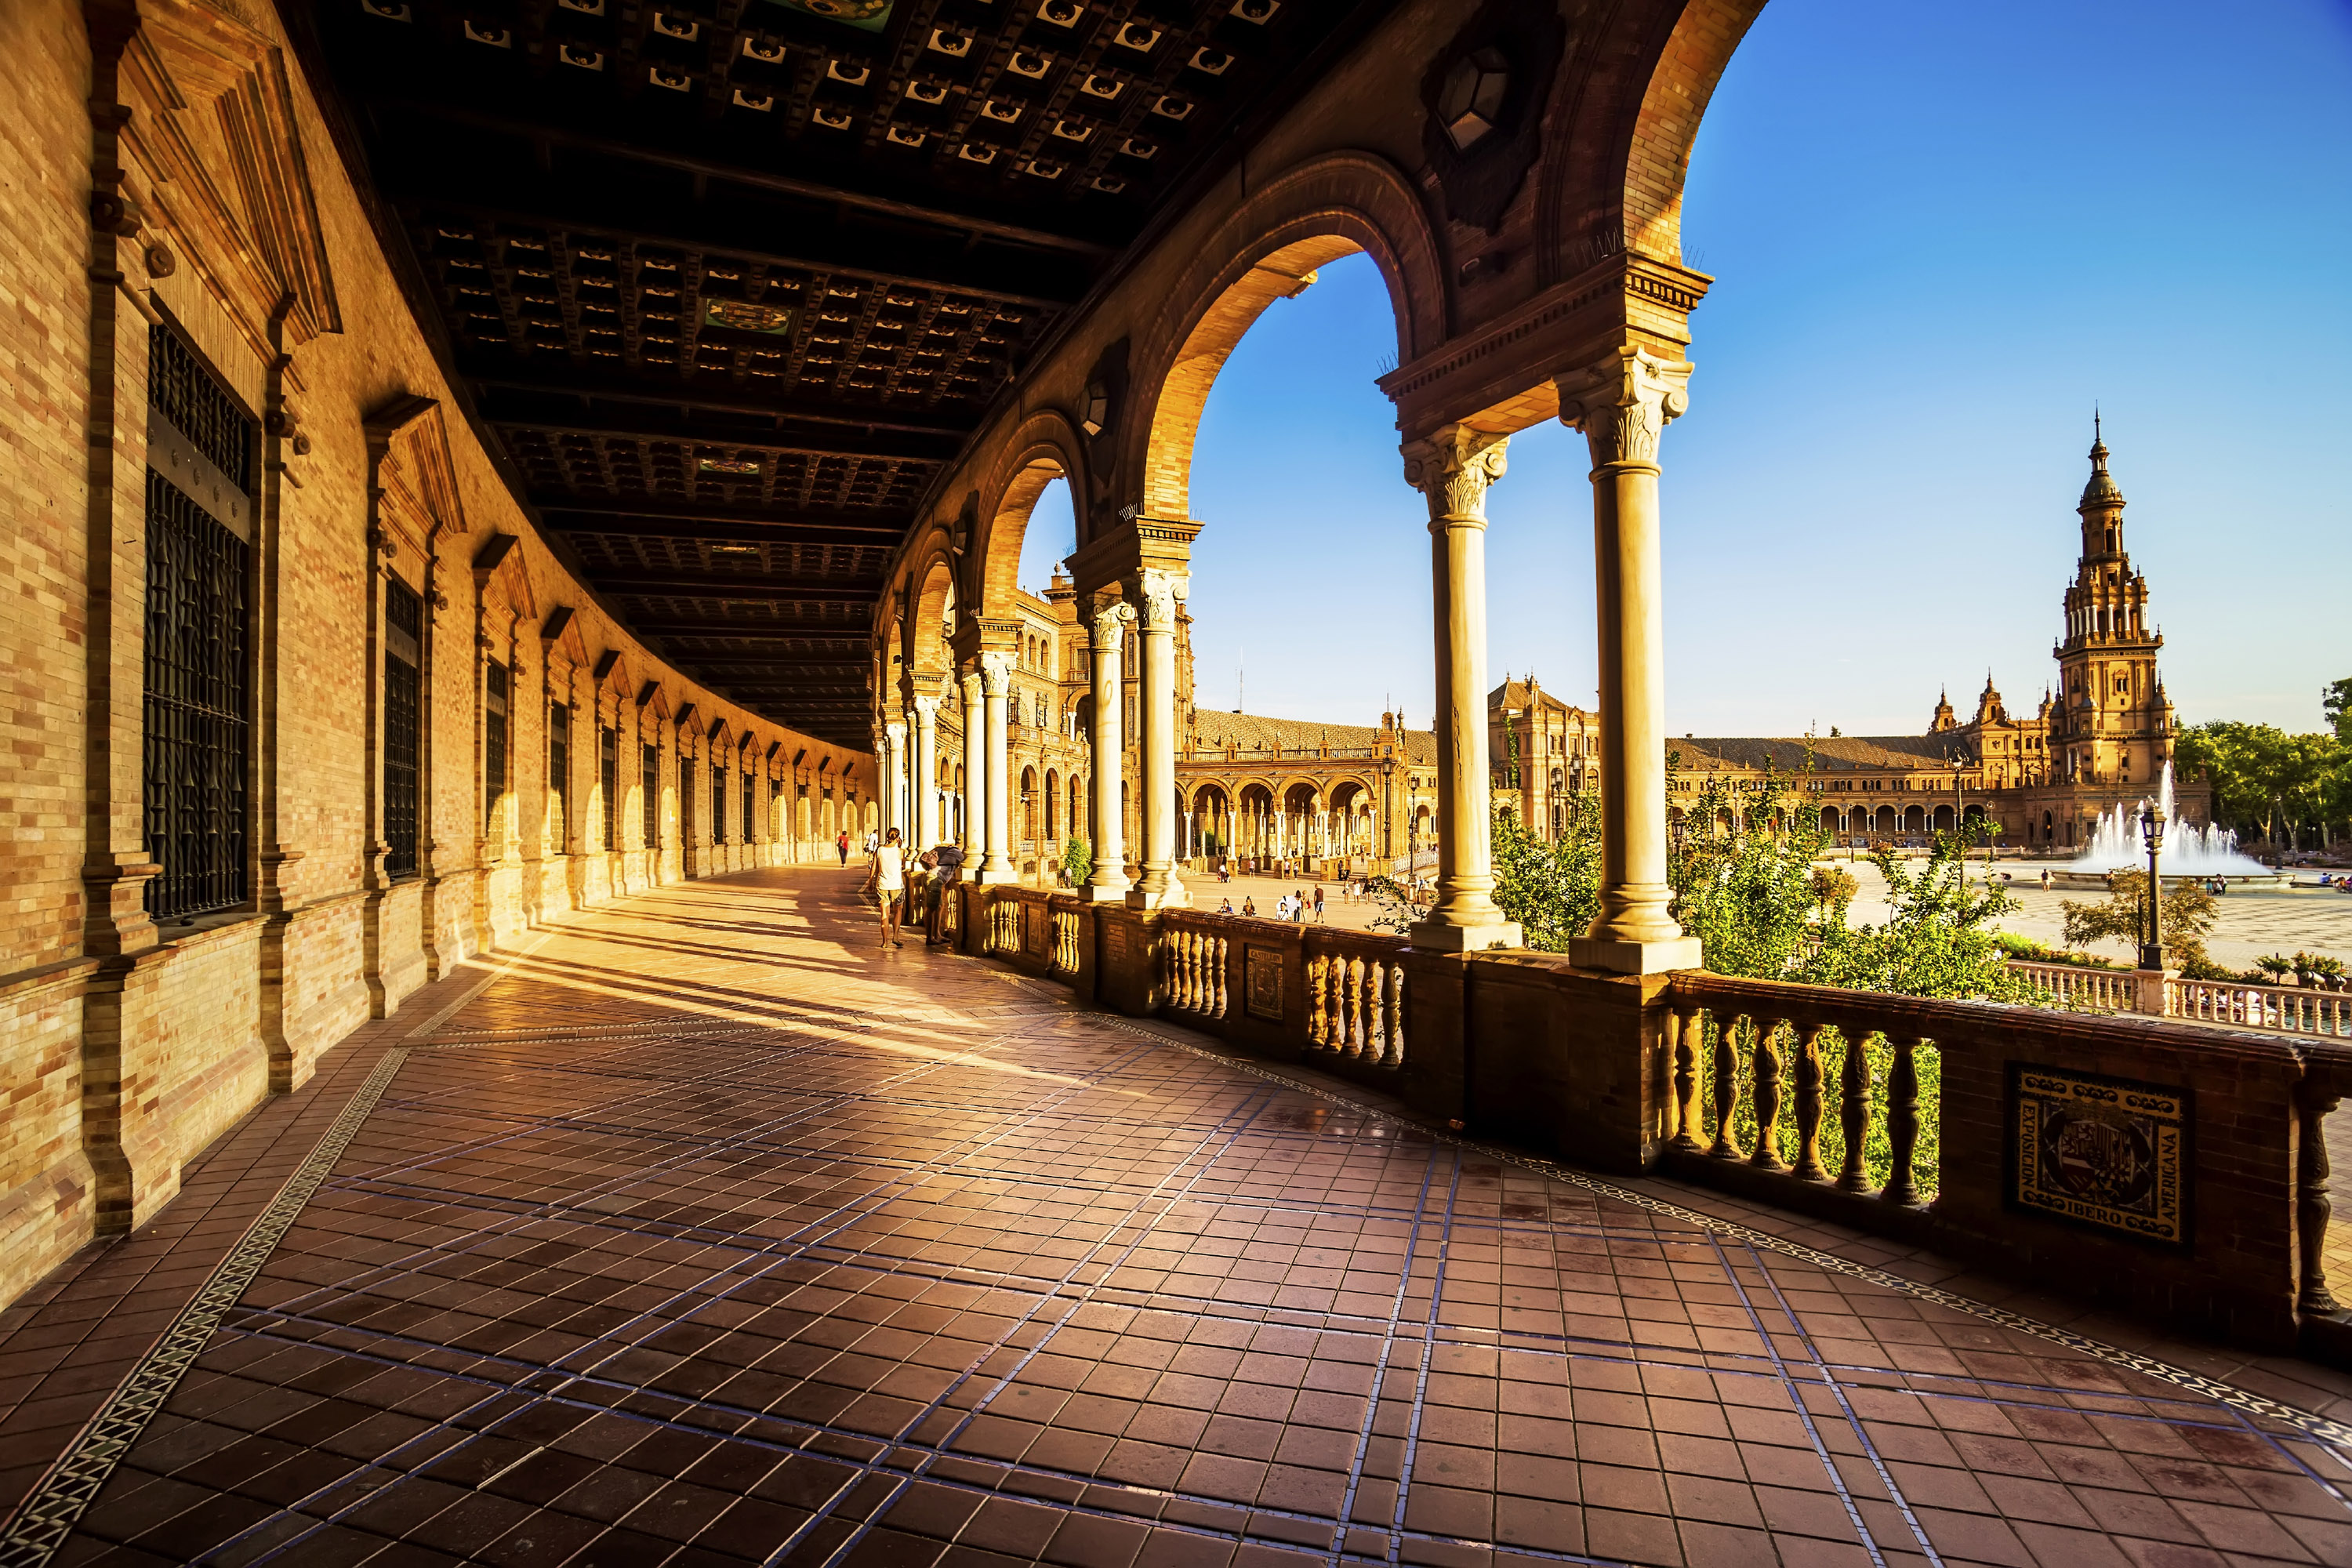 panish Square (Plaza de Espana) in Sevilla at sunset, Spain.